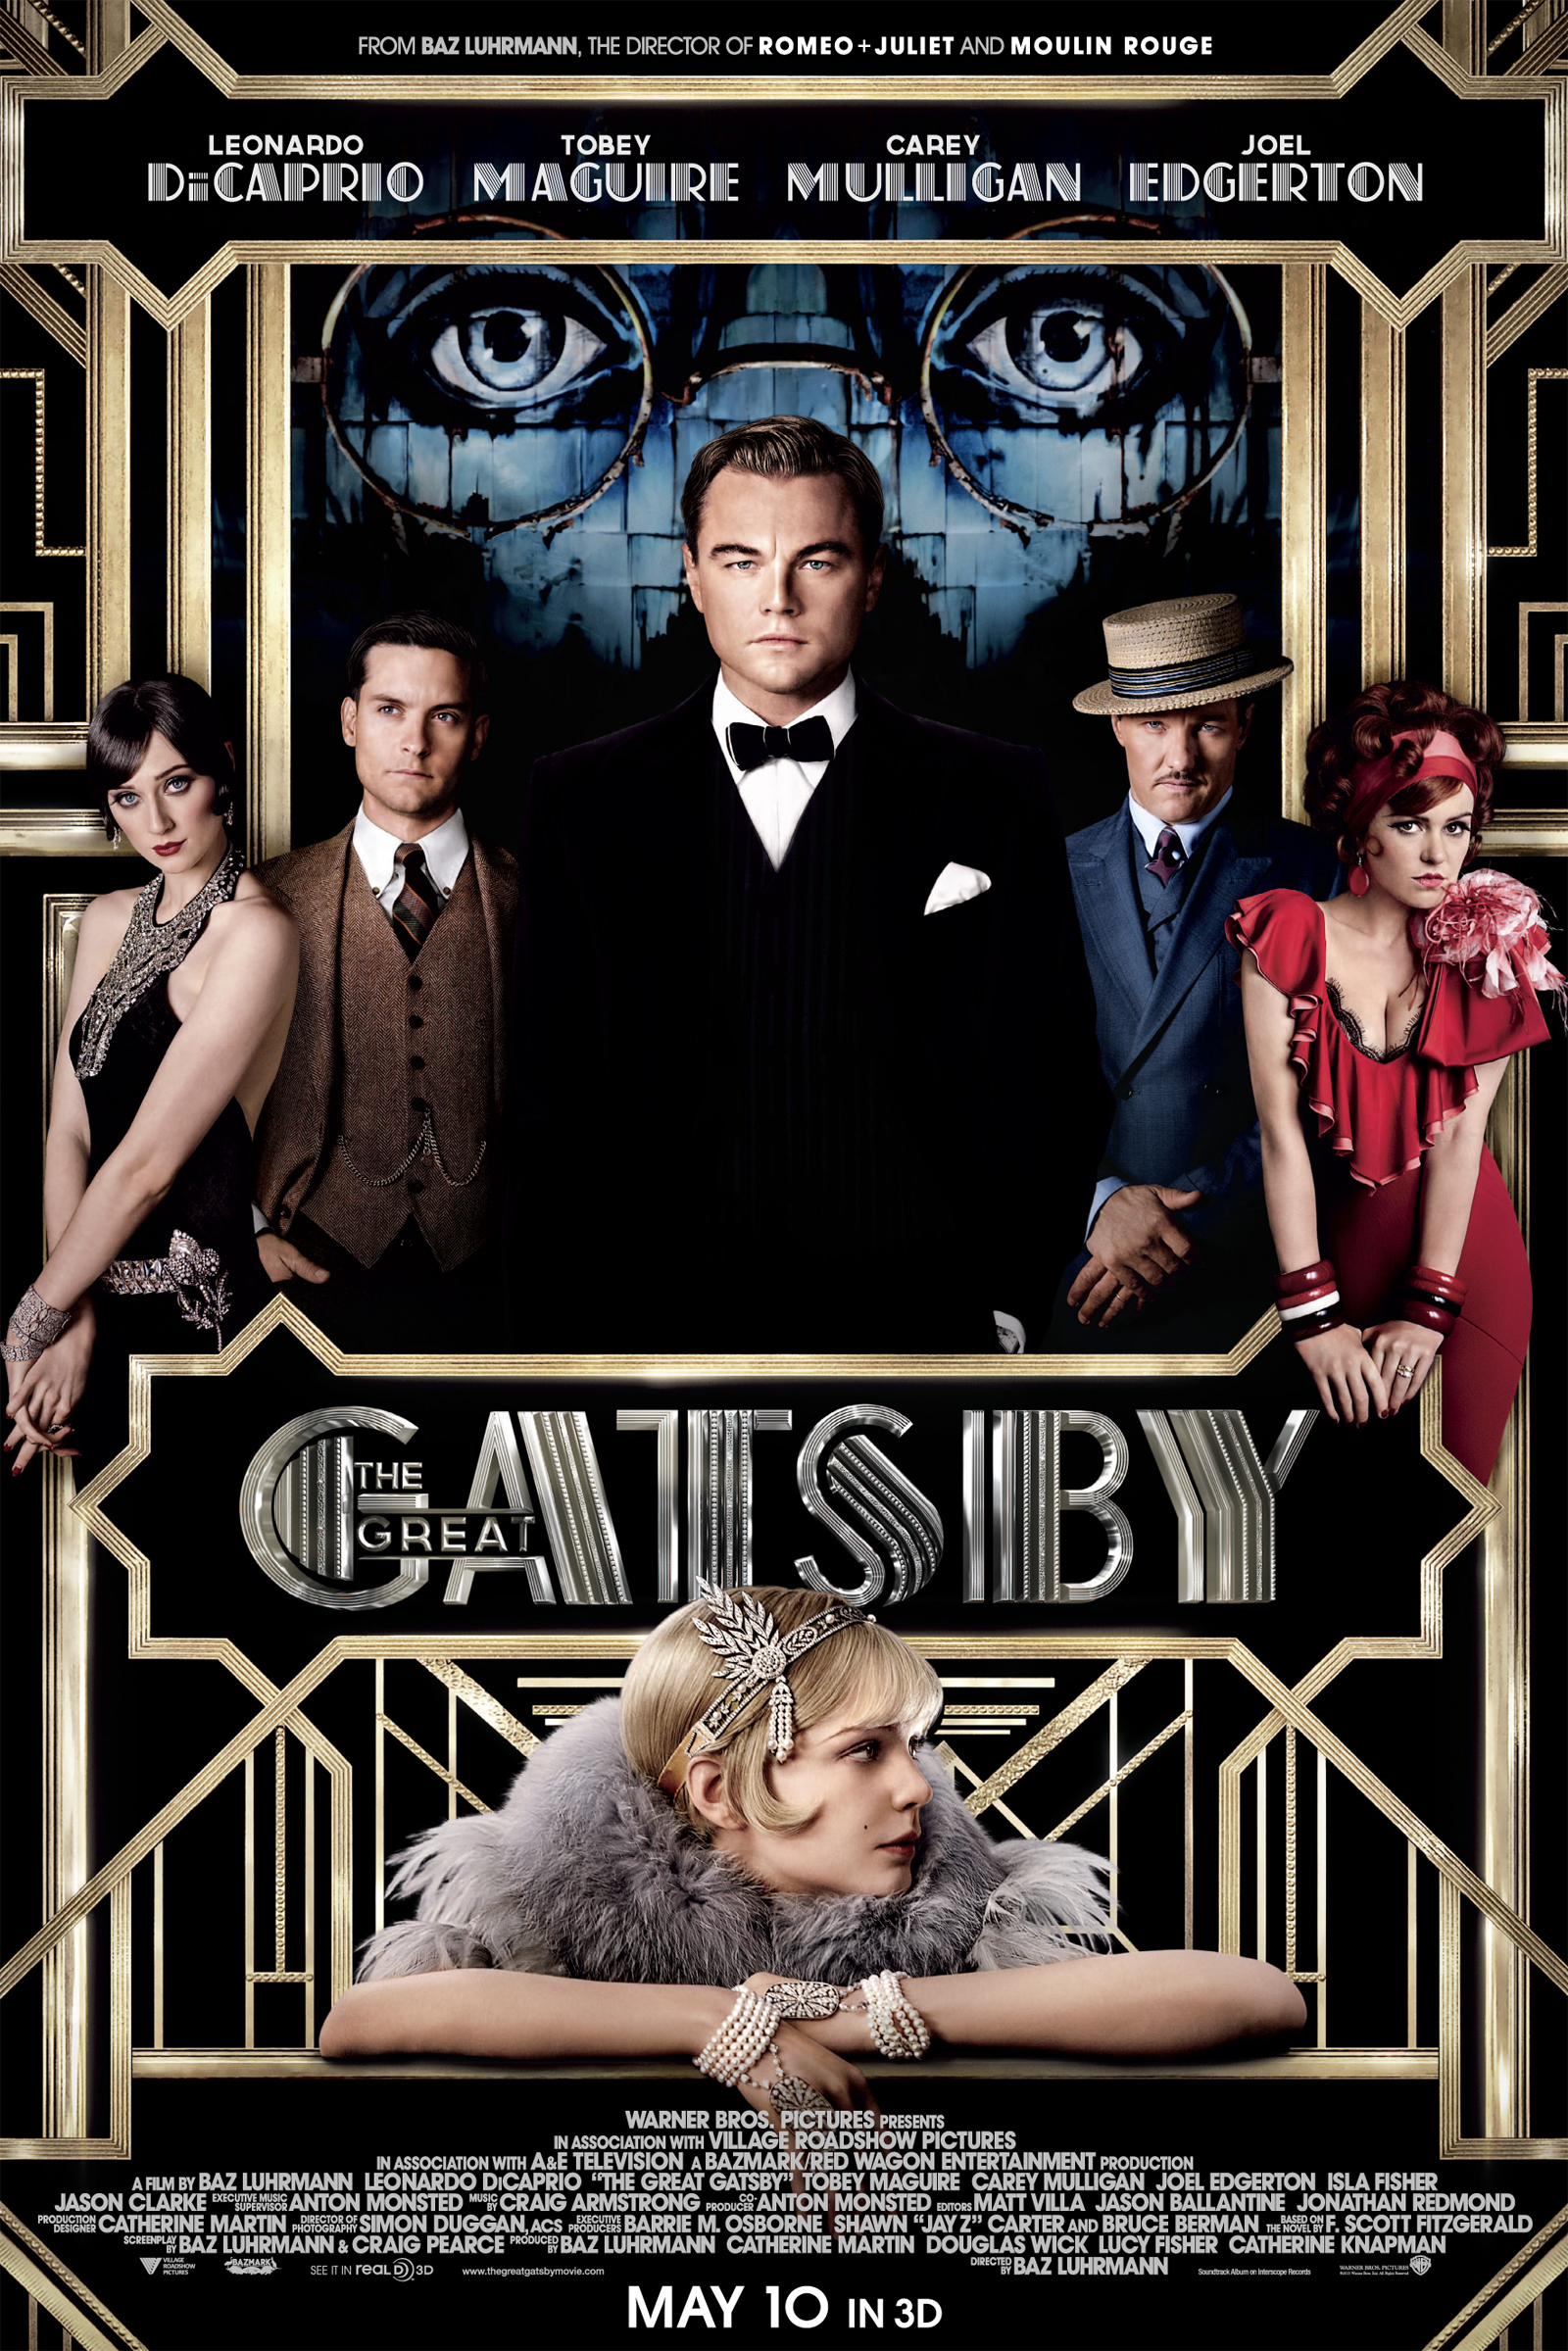 GREAT GATSBY, THE (PG-13)